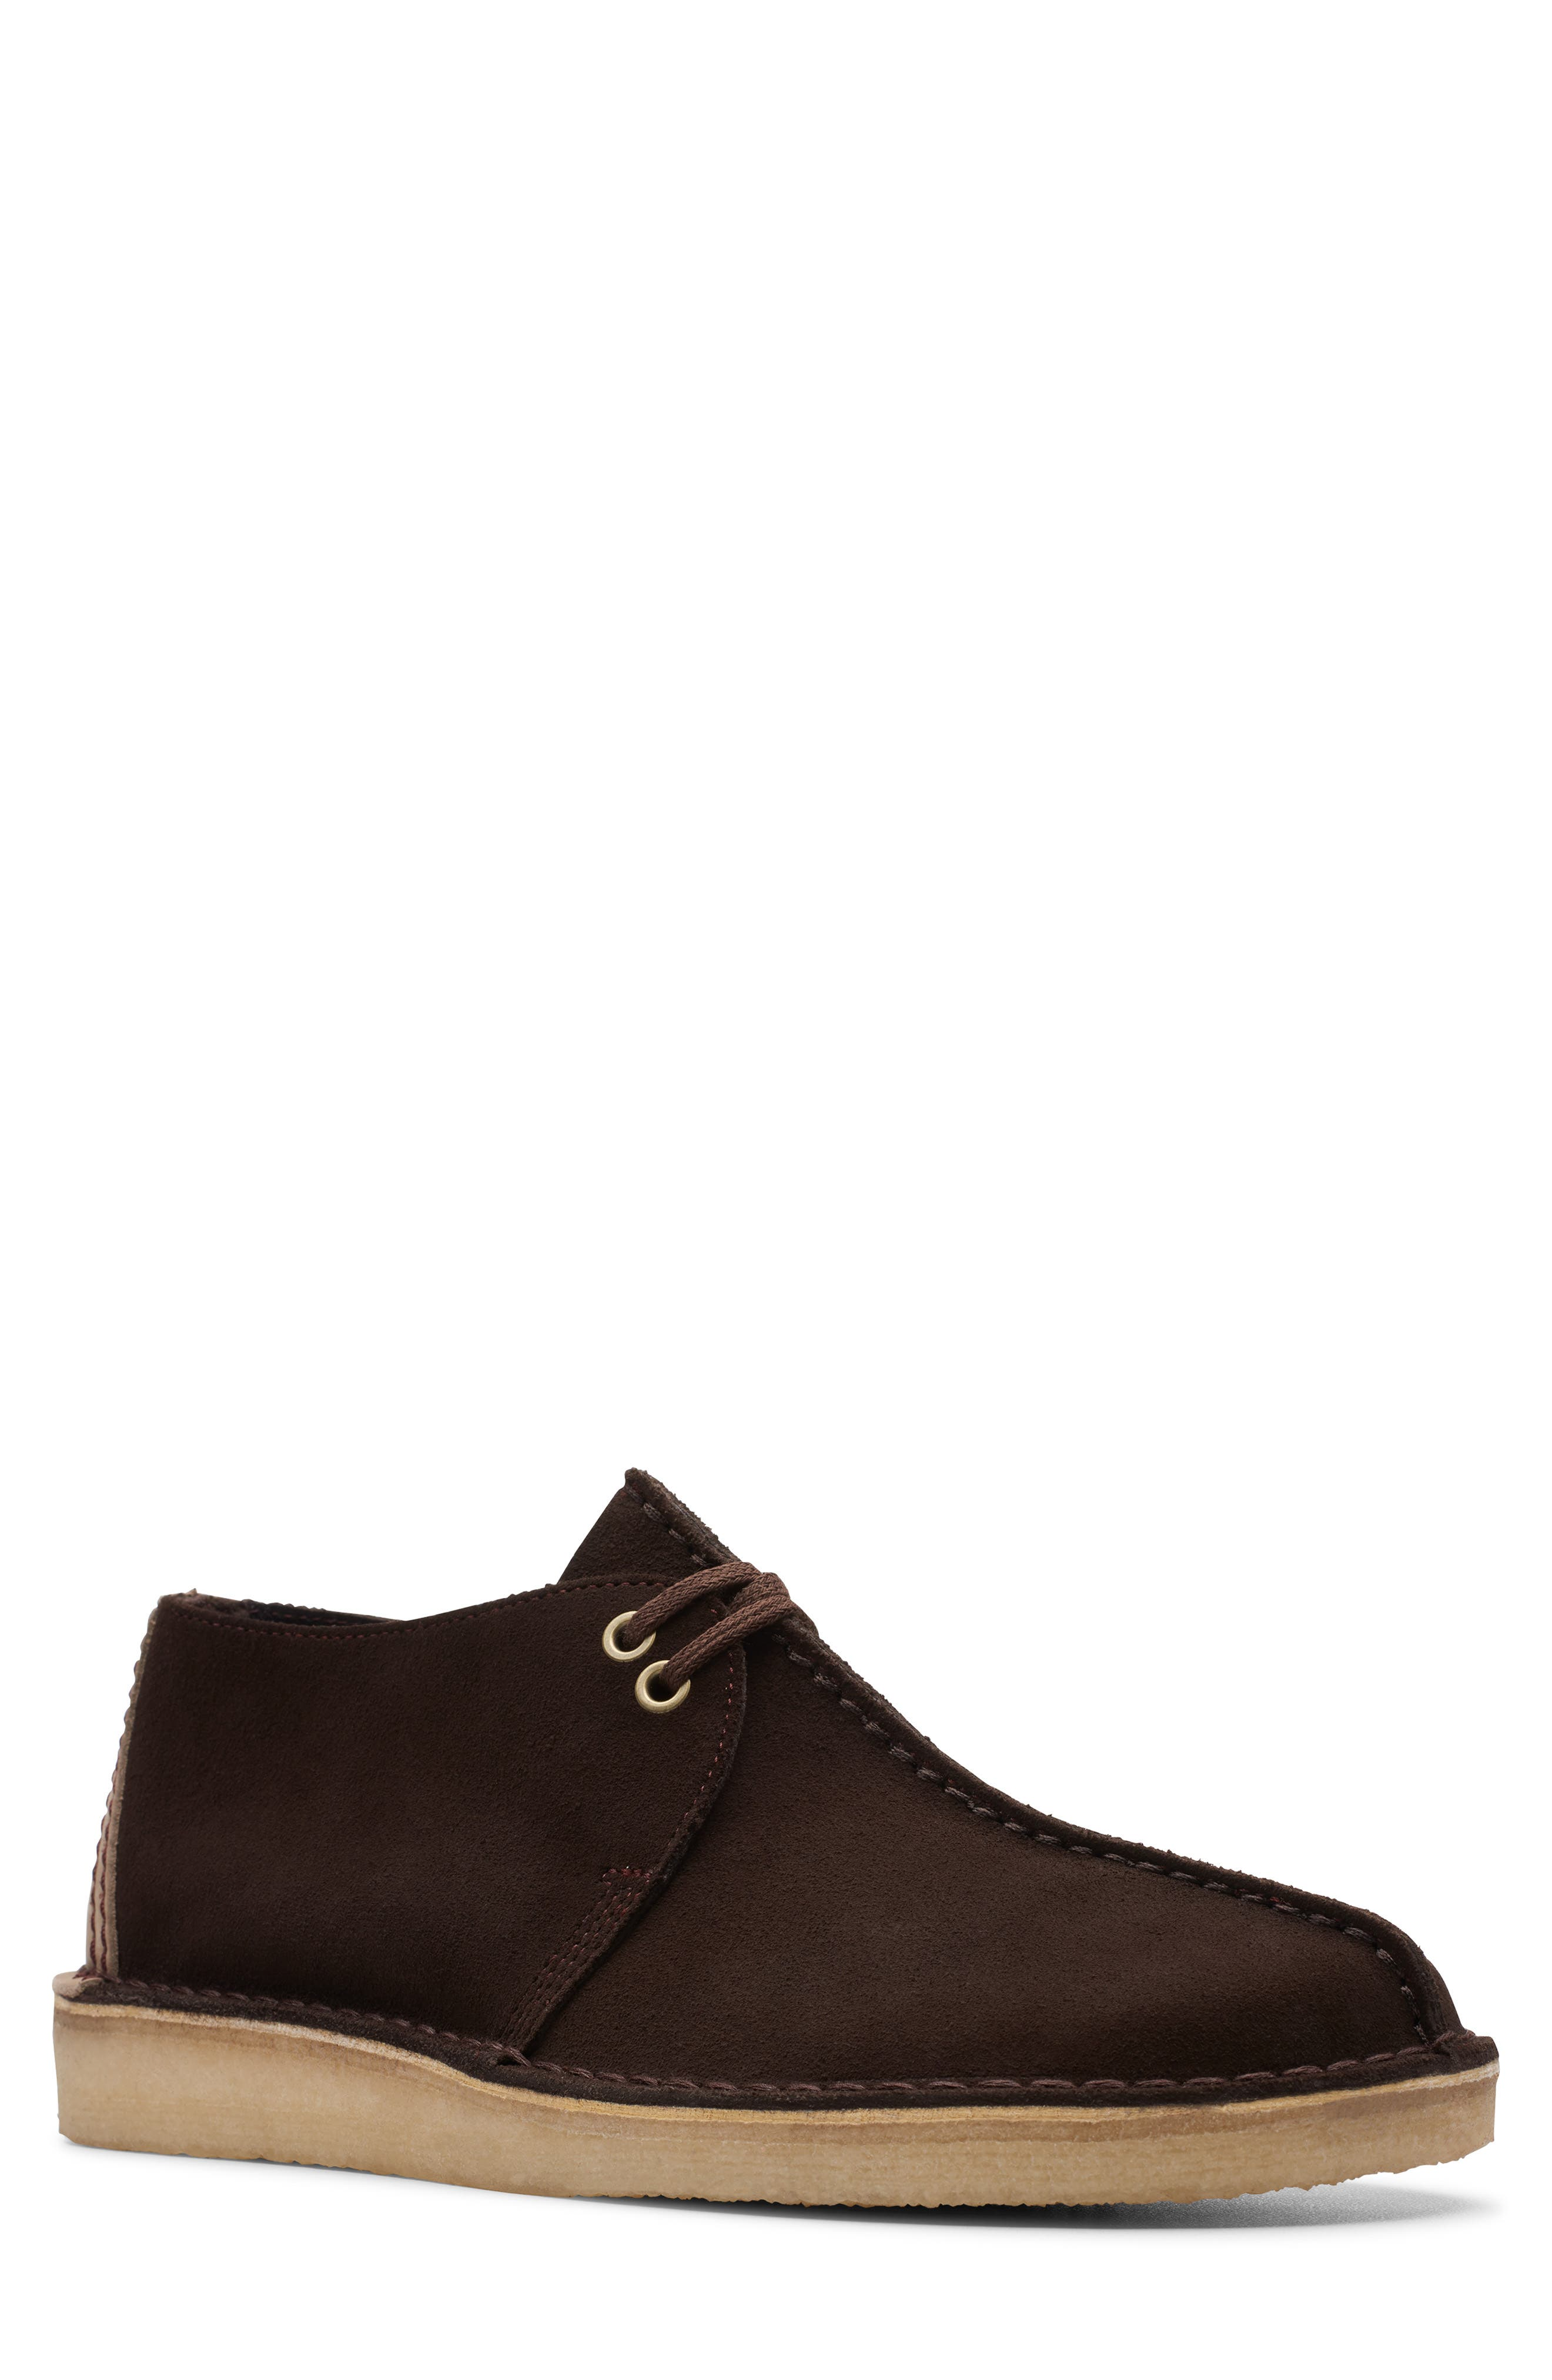 CLARKS<SUP>®</SUP>, Desert Trek Chukka Boot, Main thumbnail 1, color, DARK BROWN SUEDE